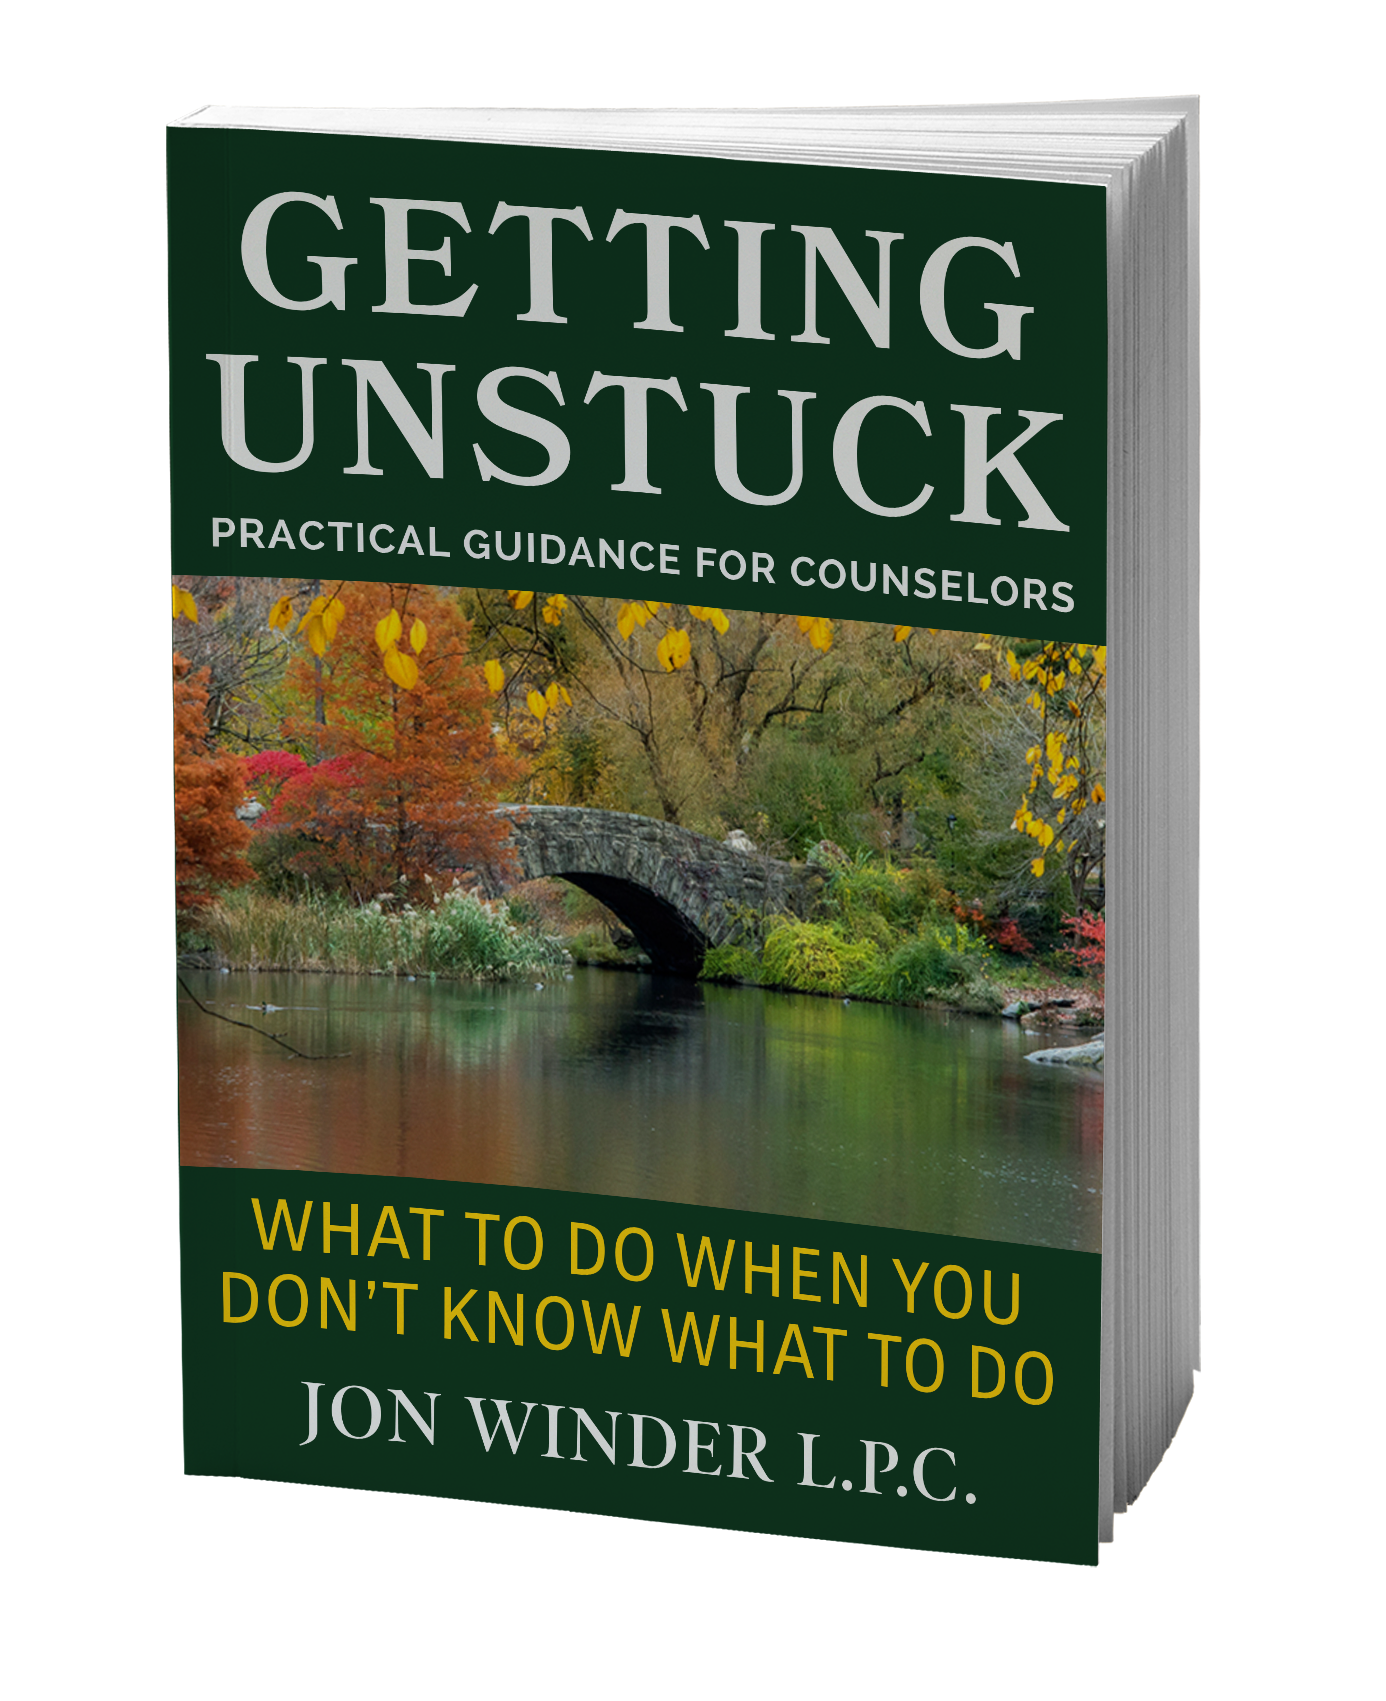 Getting Unstuck, Jon Winder